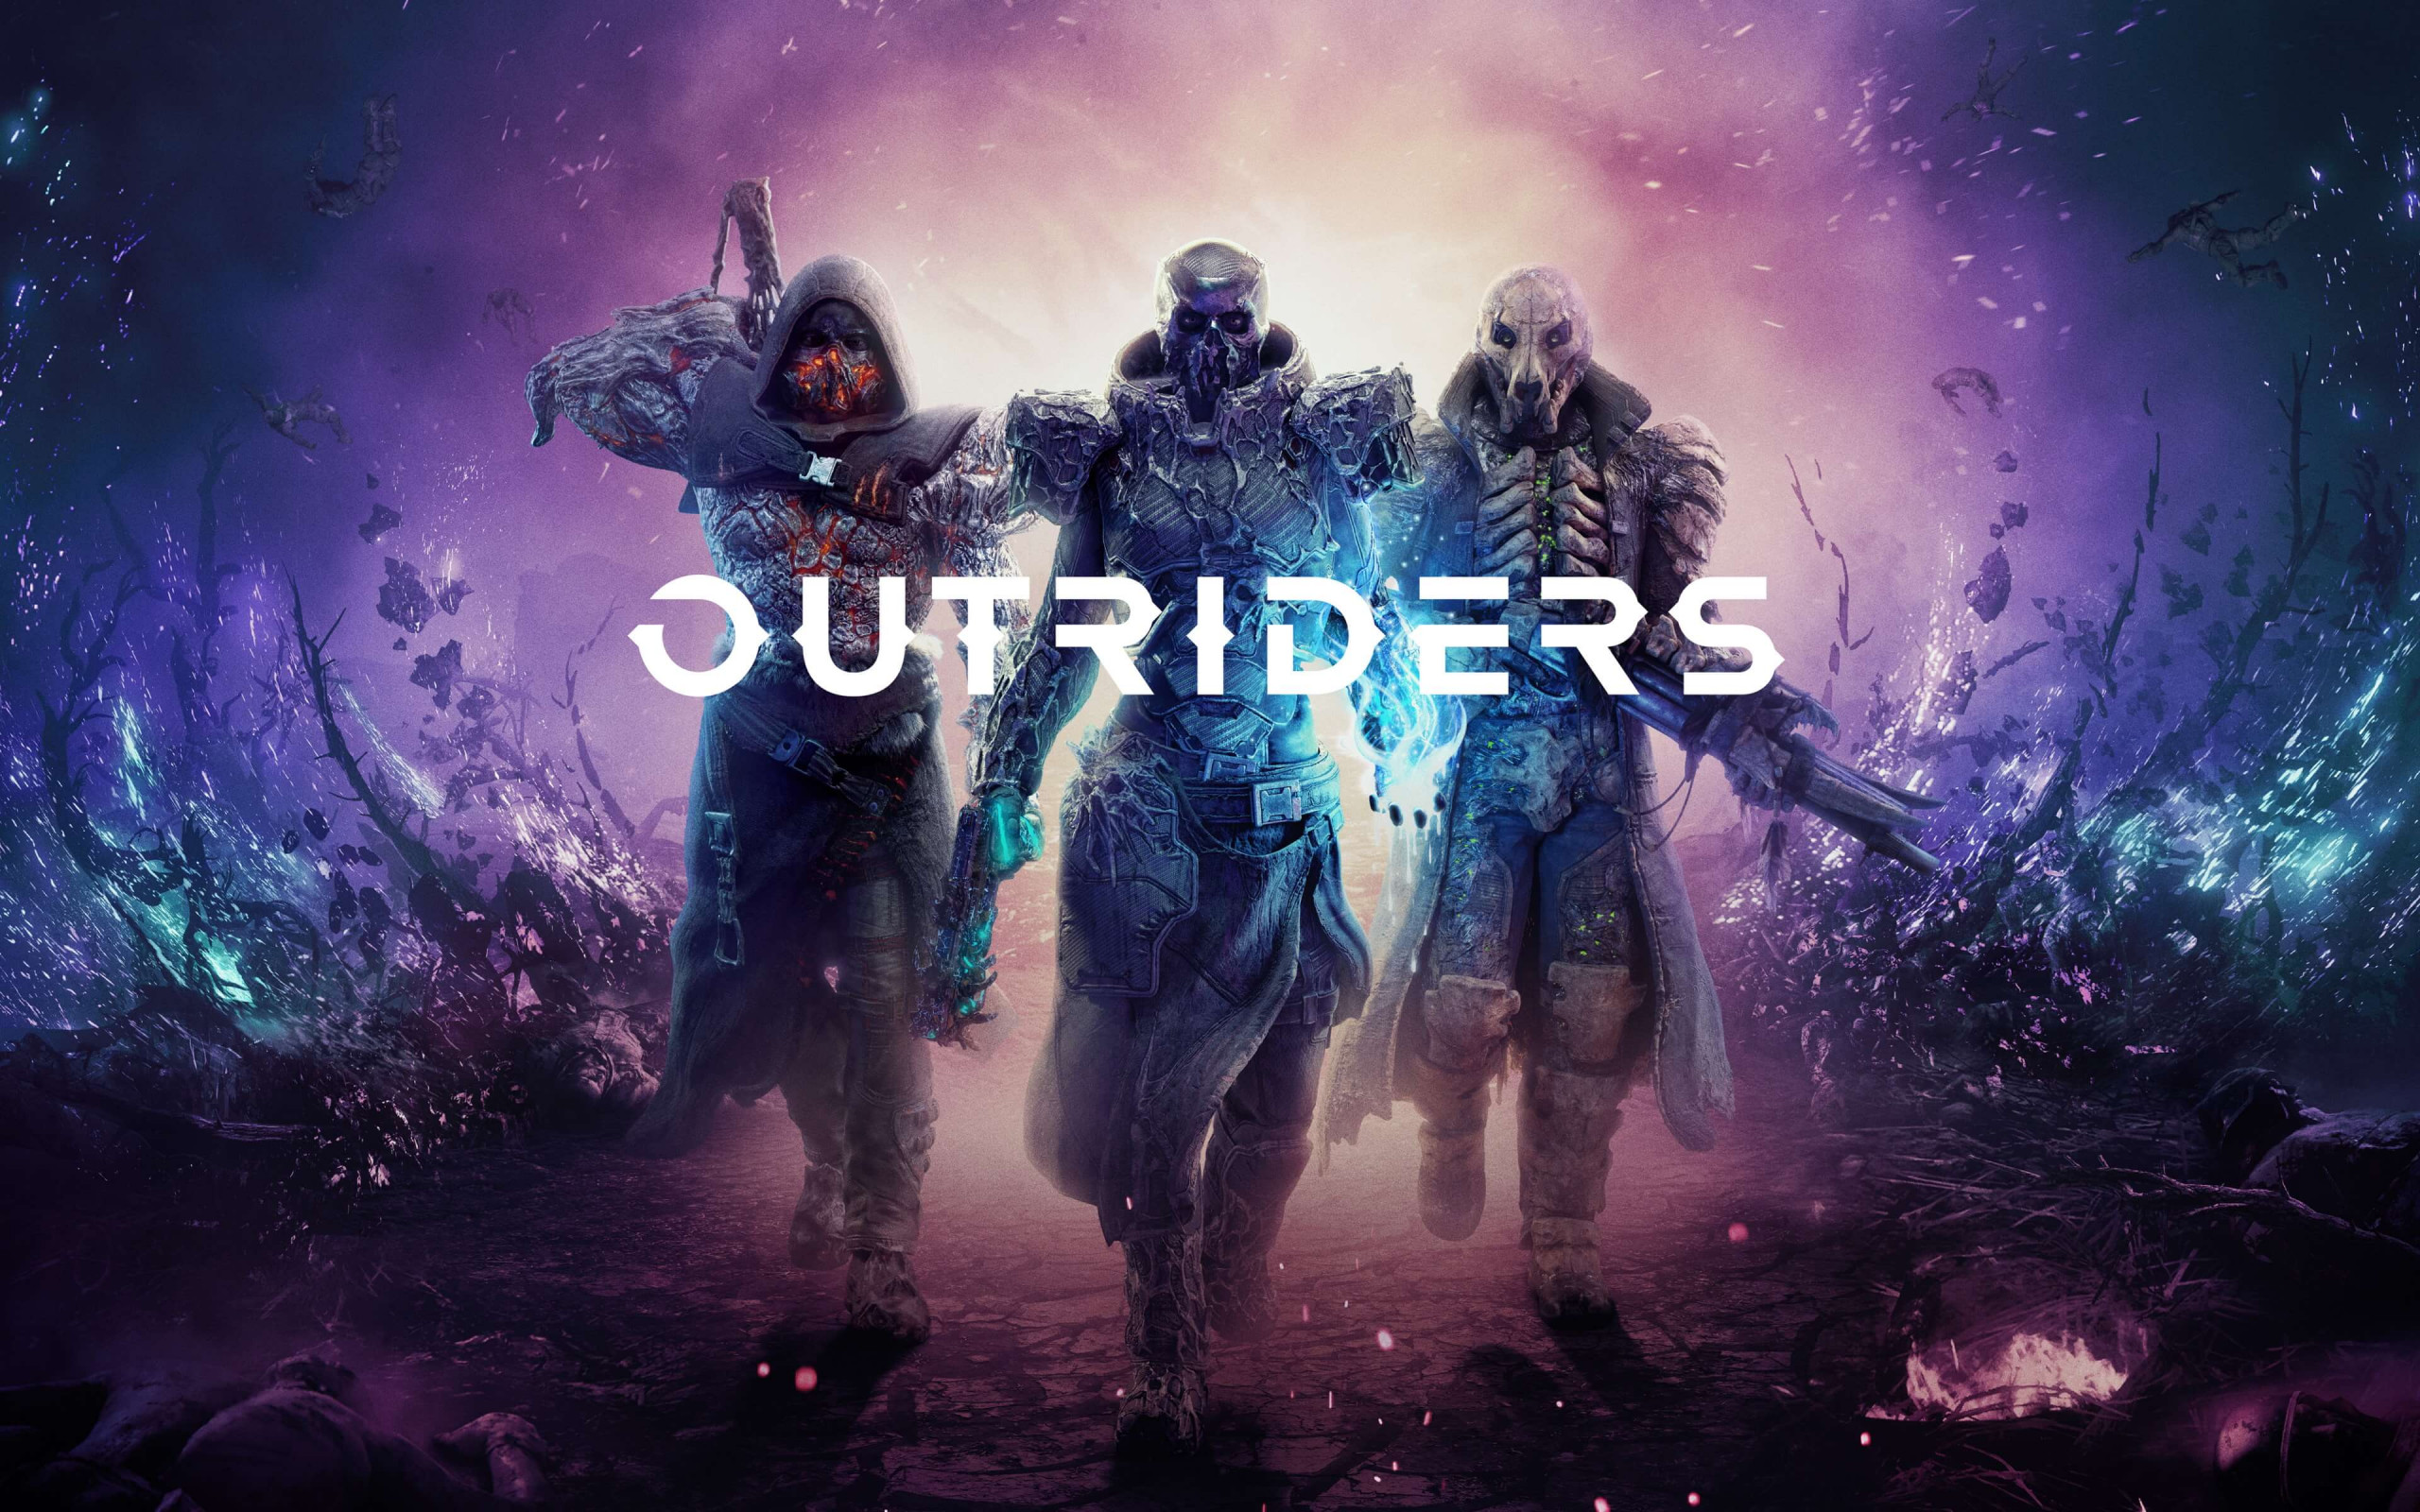 Outriders wallpaper 2560x1600